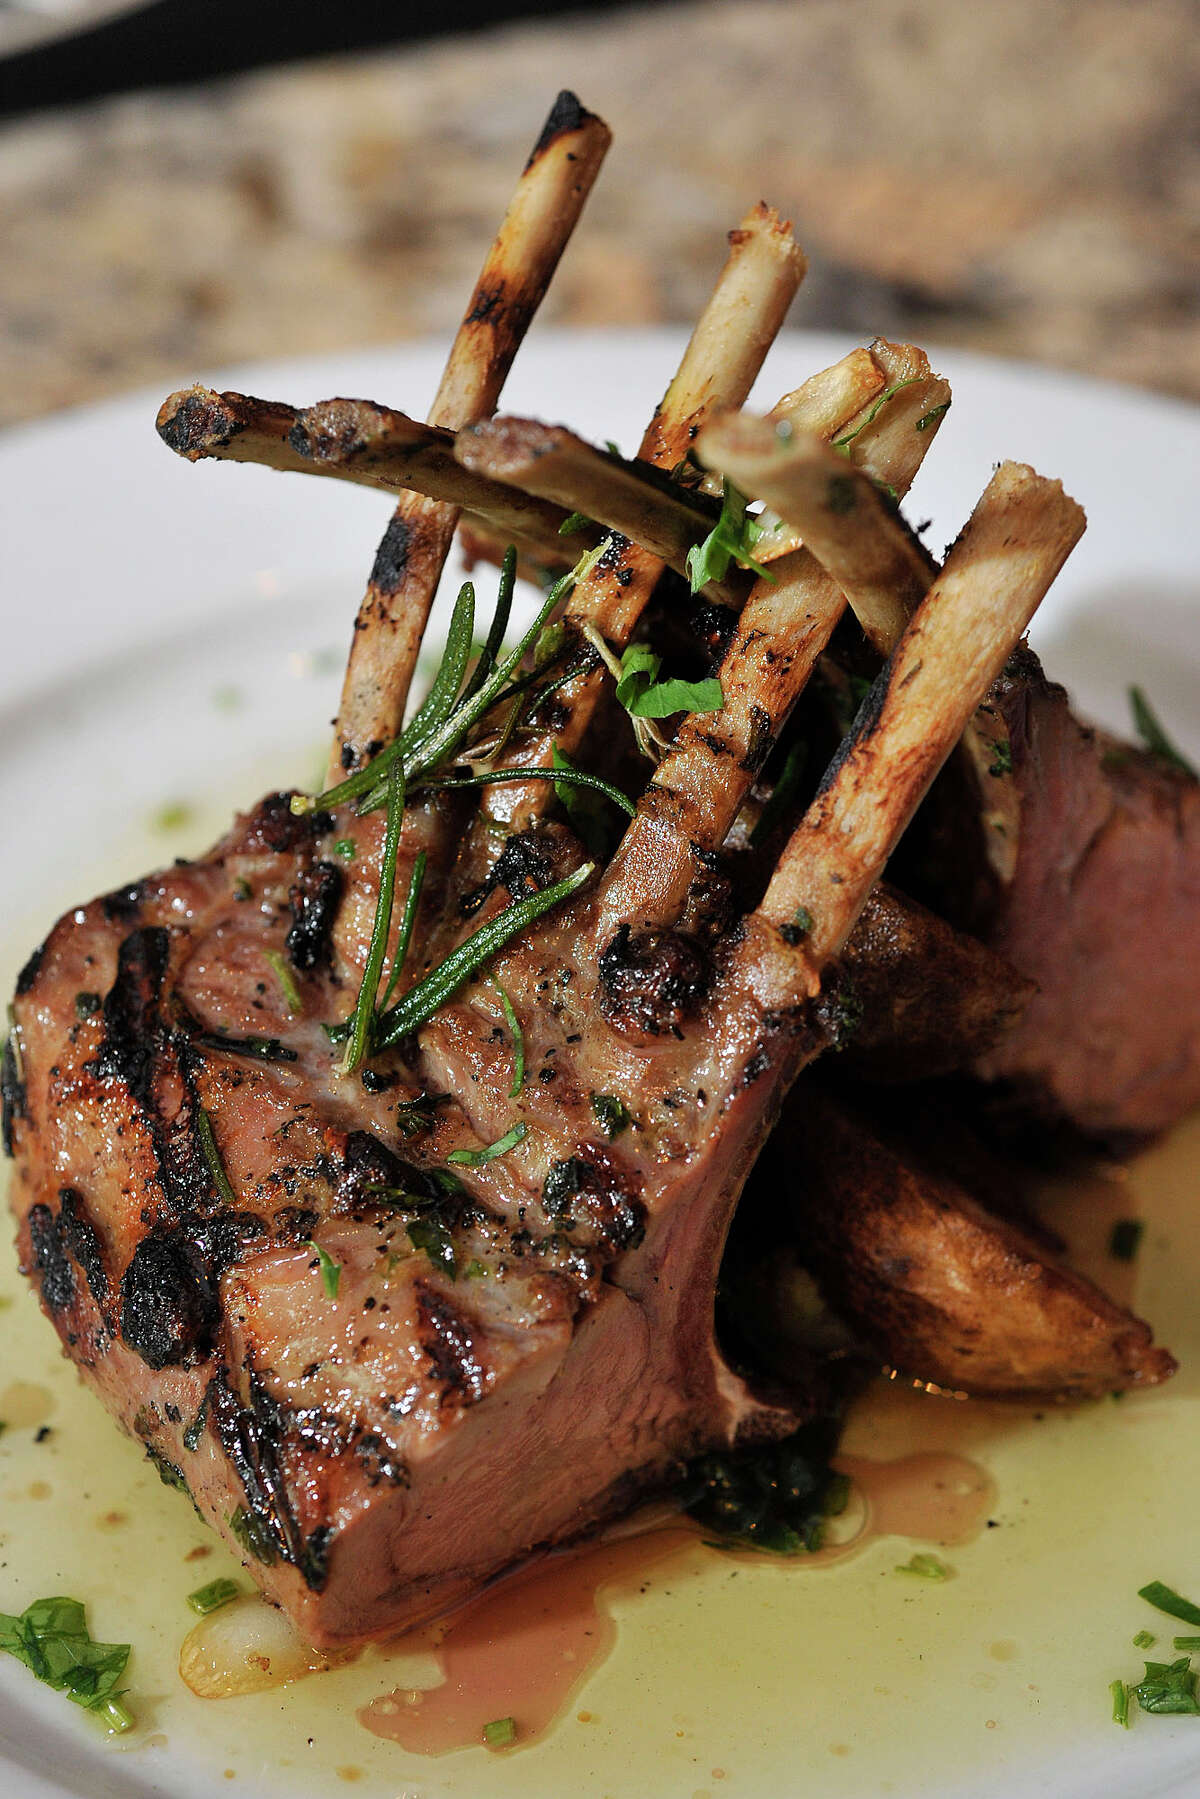 The lombatina, a grilled petit rack of veal chop with rosemary, au jus and garlic, is a featured dish at Quartino Trattoria and Vineria in South Norwalk, Conn. Photographed on Wednesday, July 2, 2014.